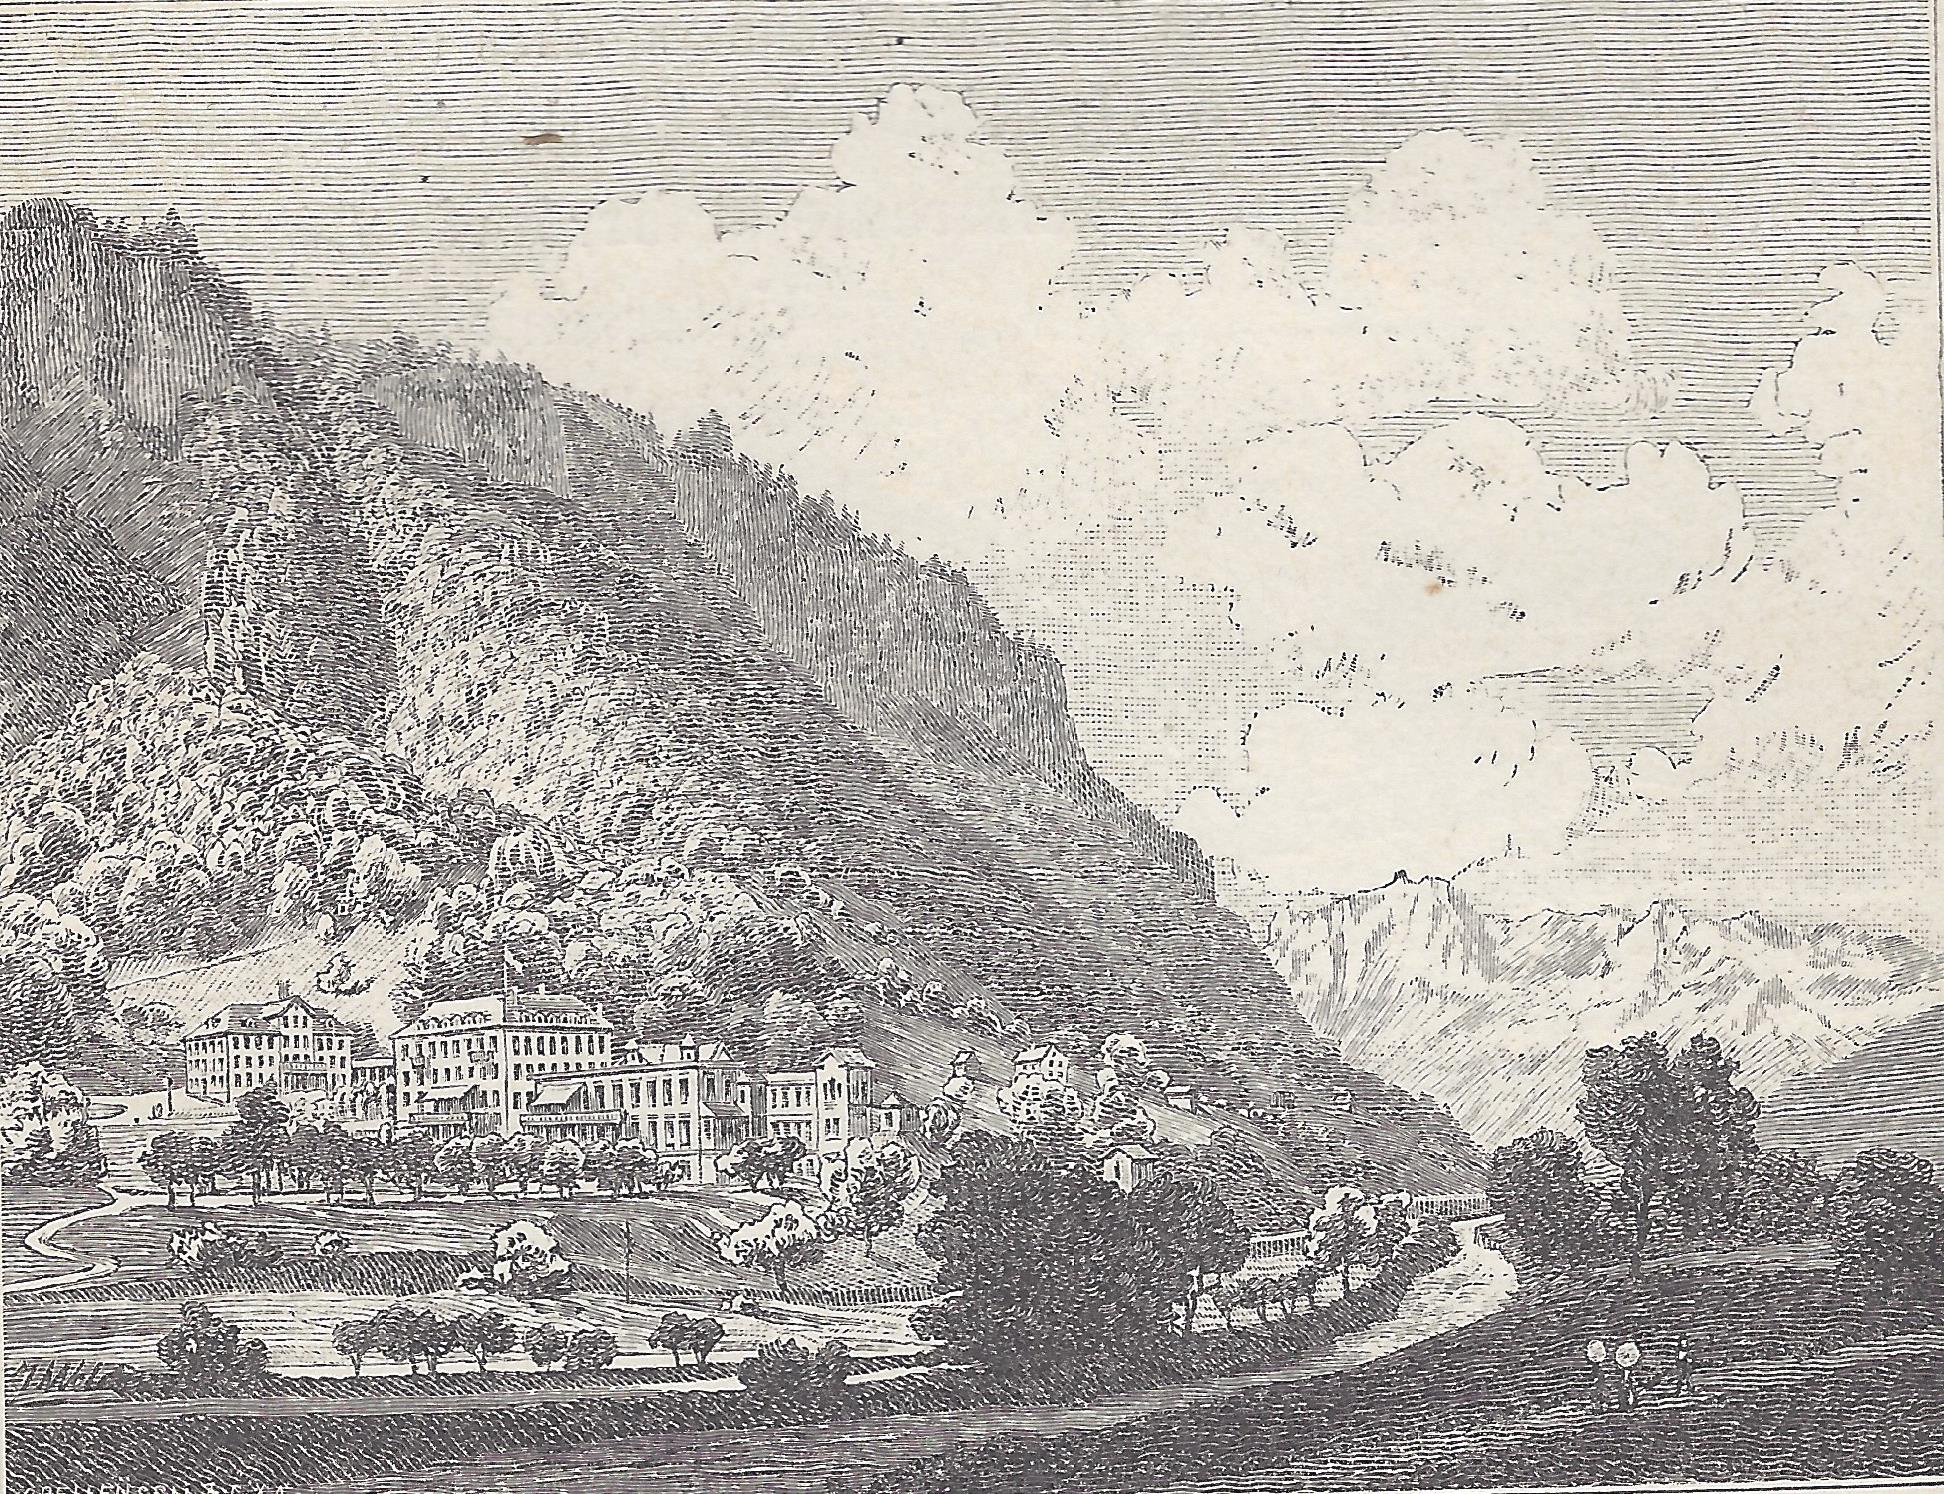 Bad Stachelberg about 1880